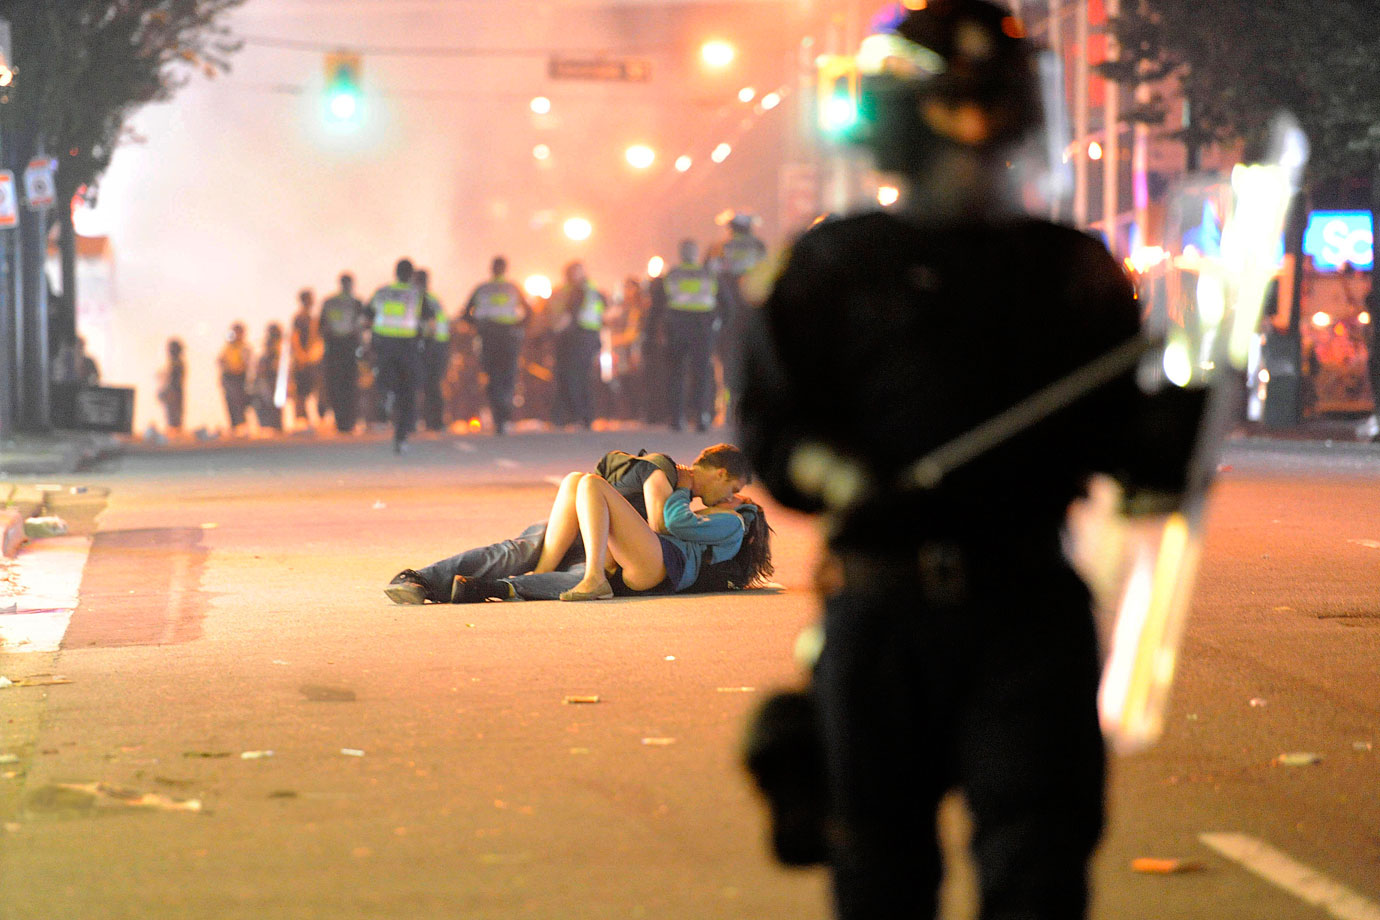 While the Boston Bruins celebrated their championship inside Rogers Arena, a riot broke out in the normally peaceful city of Vancouver after fans left the building. While police patrolled and tried to contain the commotion, an amorous couple kissed in the street.